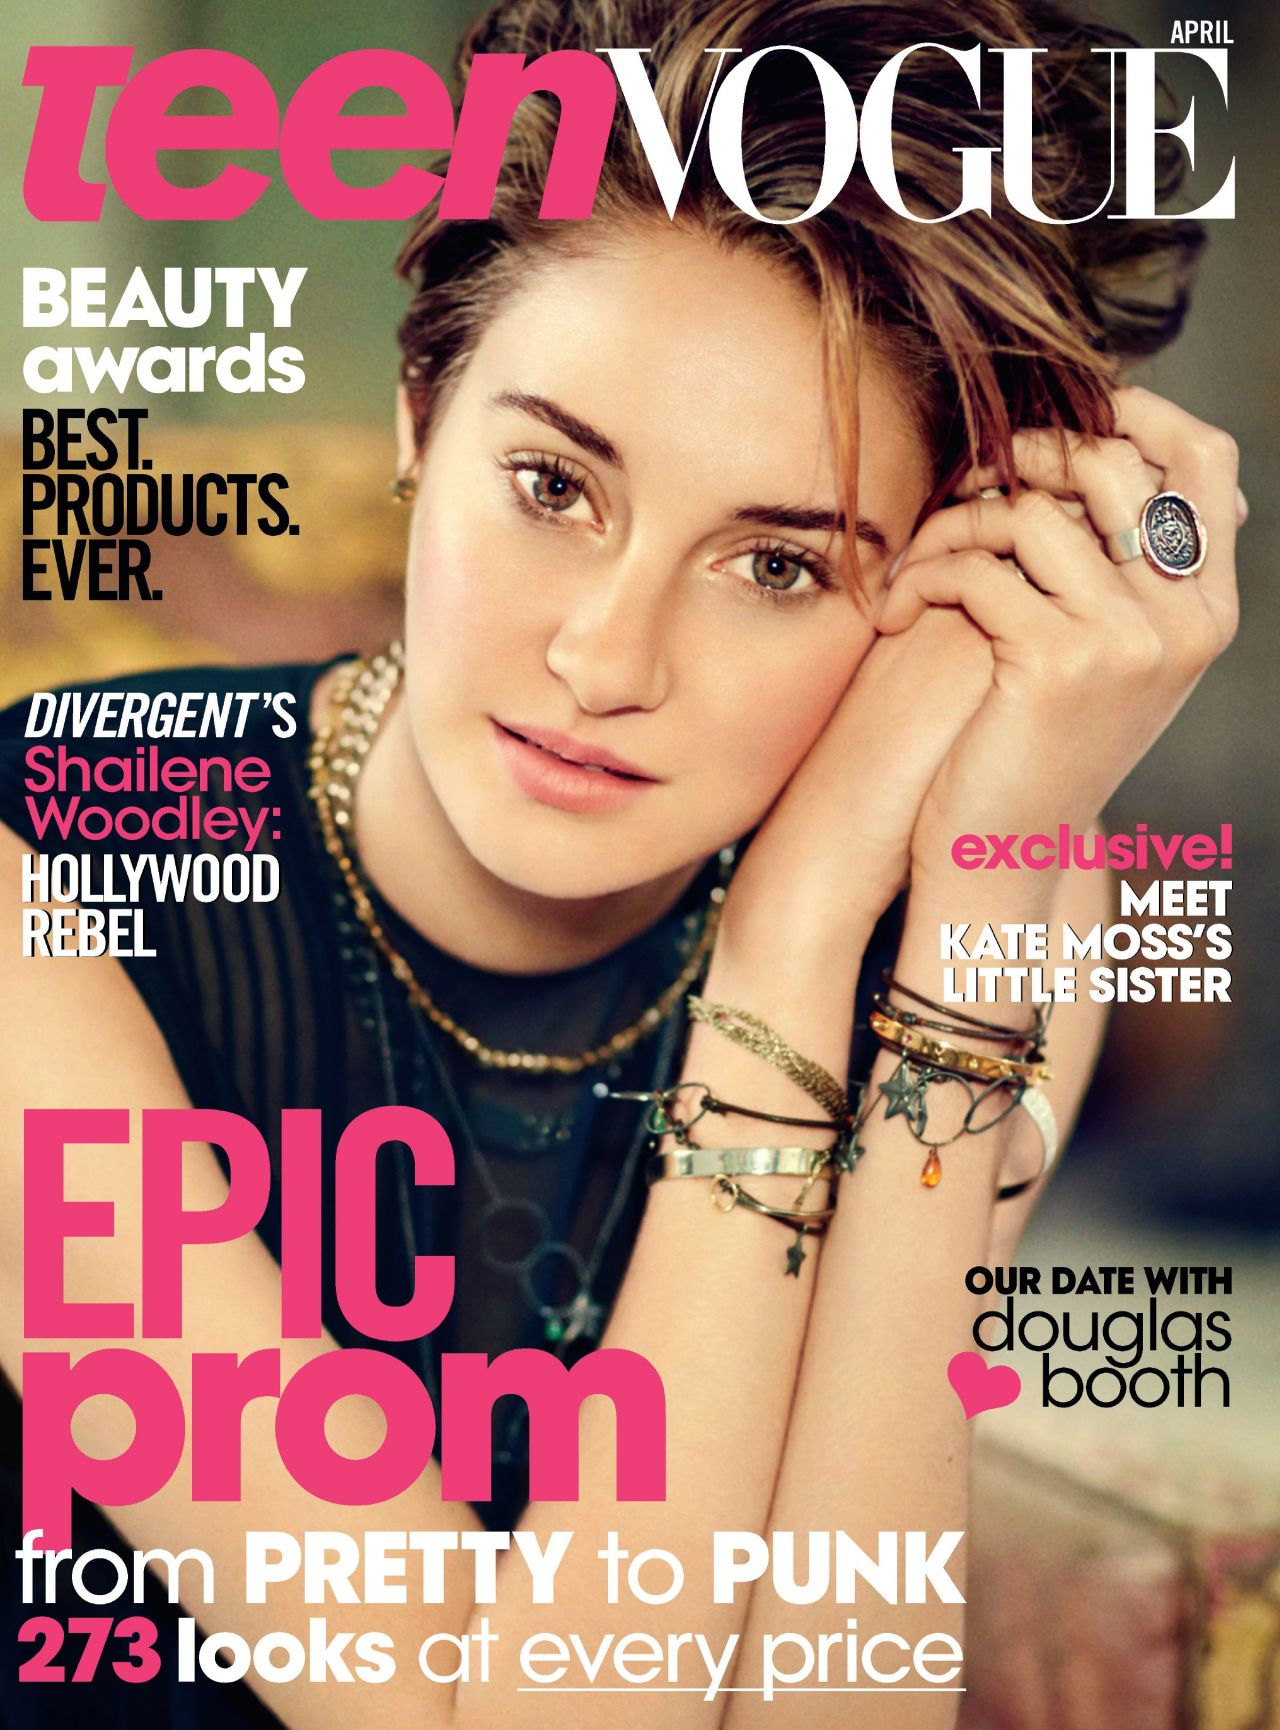 Shailene Woodley - Teen Vogue Magazine April 2014 Issue